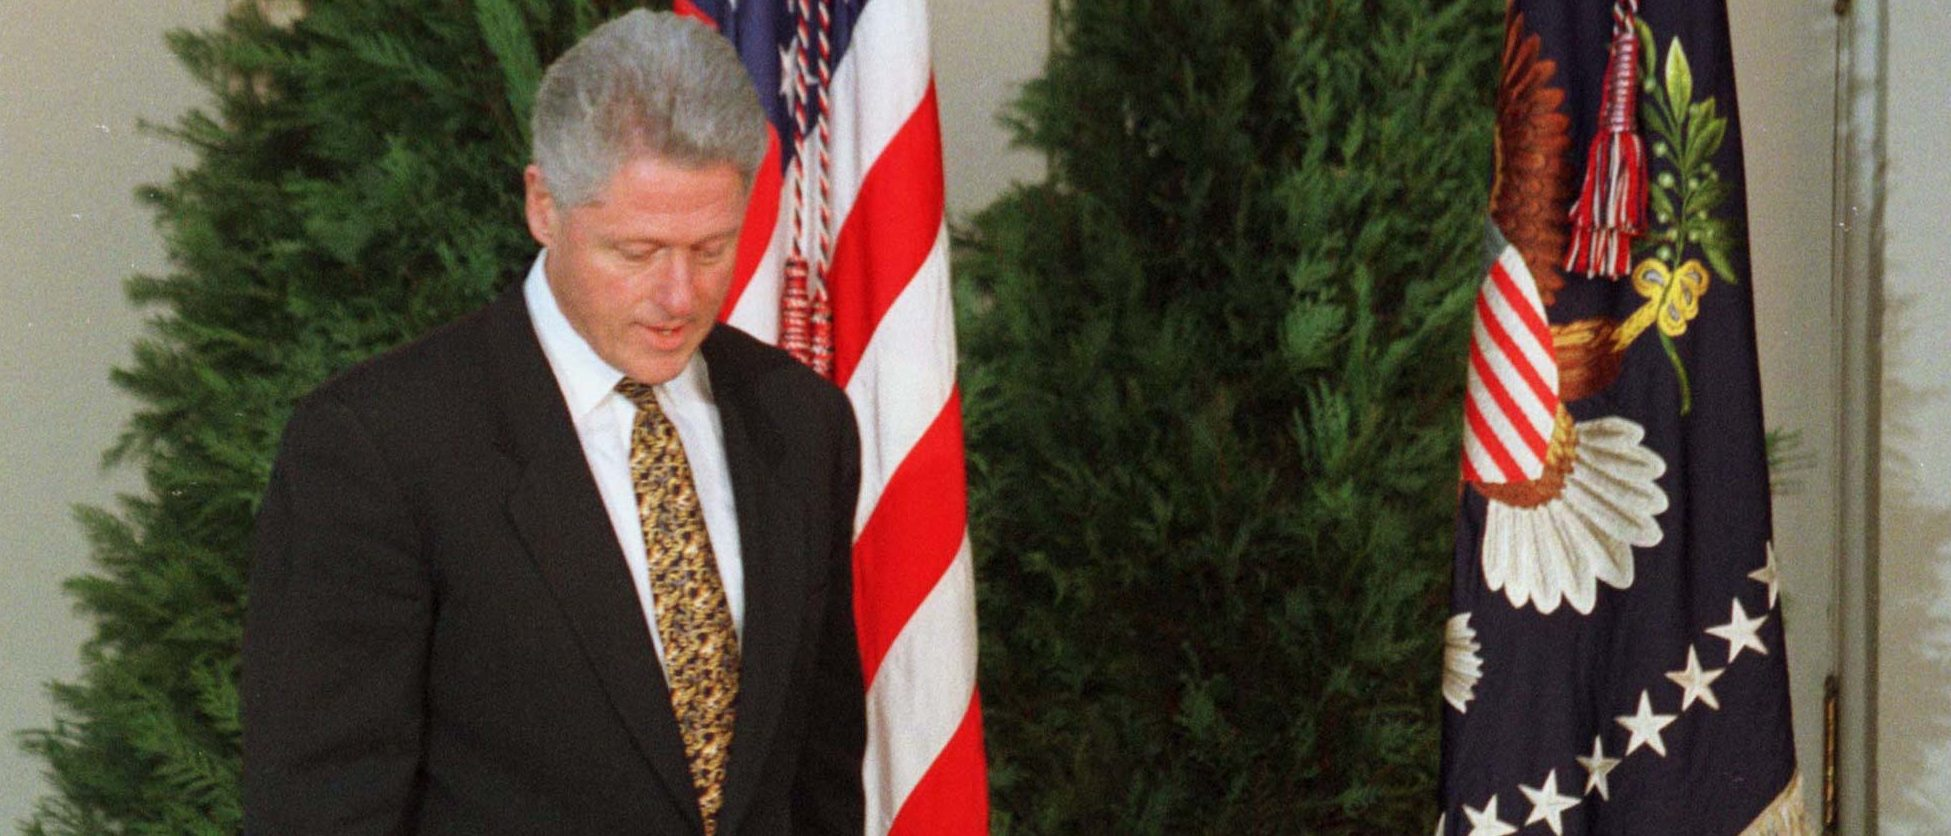 President Bill Clinton walks to the podium in the Rose Garden at the White House as he prepared to make a statement December 11, minutes before the House Judiciary Committee approved the first article of impeachment, 21-16. Clinton offered his profound appology for misleading the country about his affair with Monica Lewinsky.